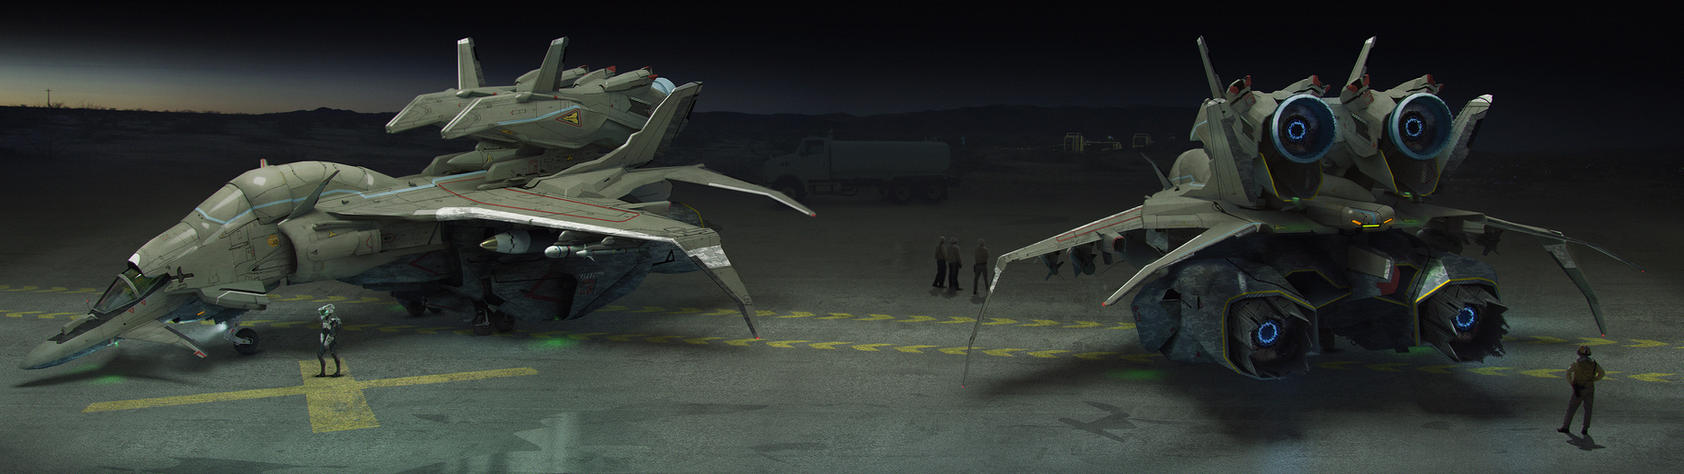 Jet Fighter Concept 01 by bradwright